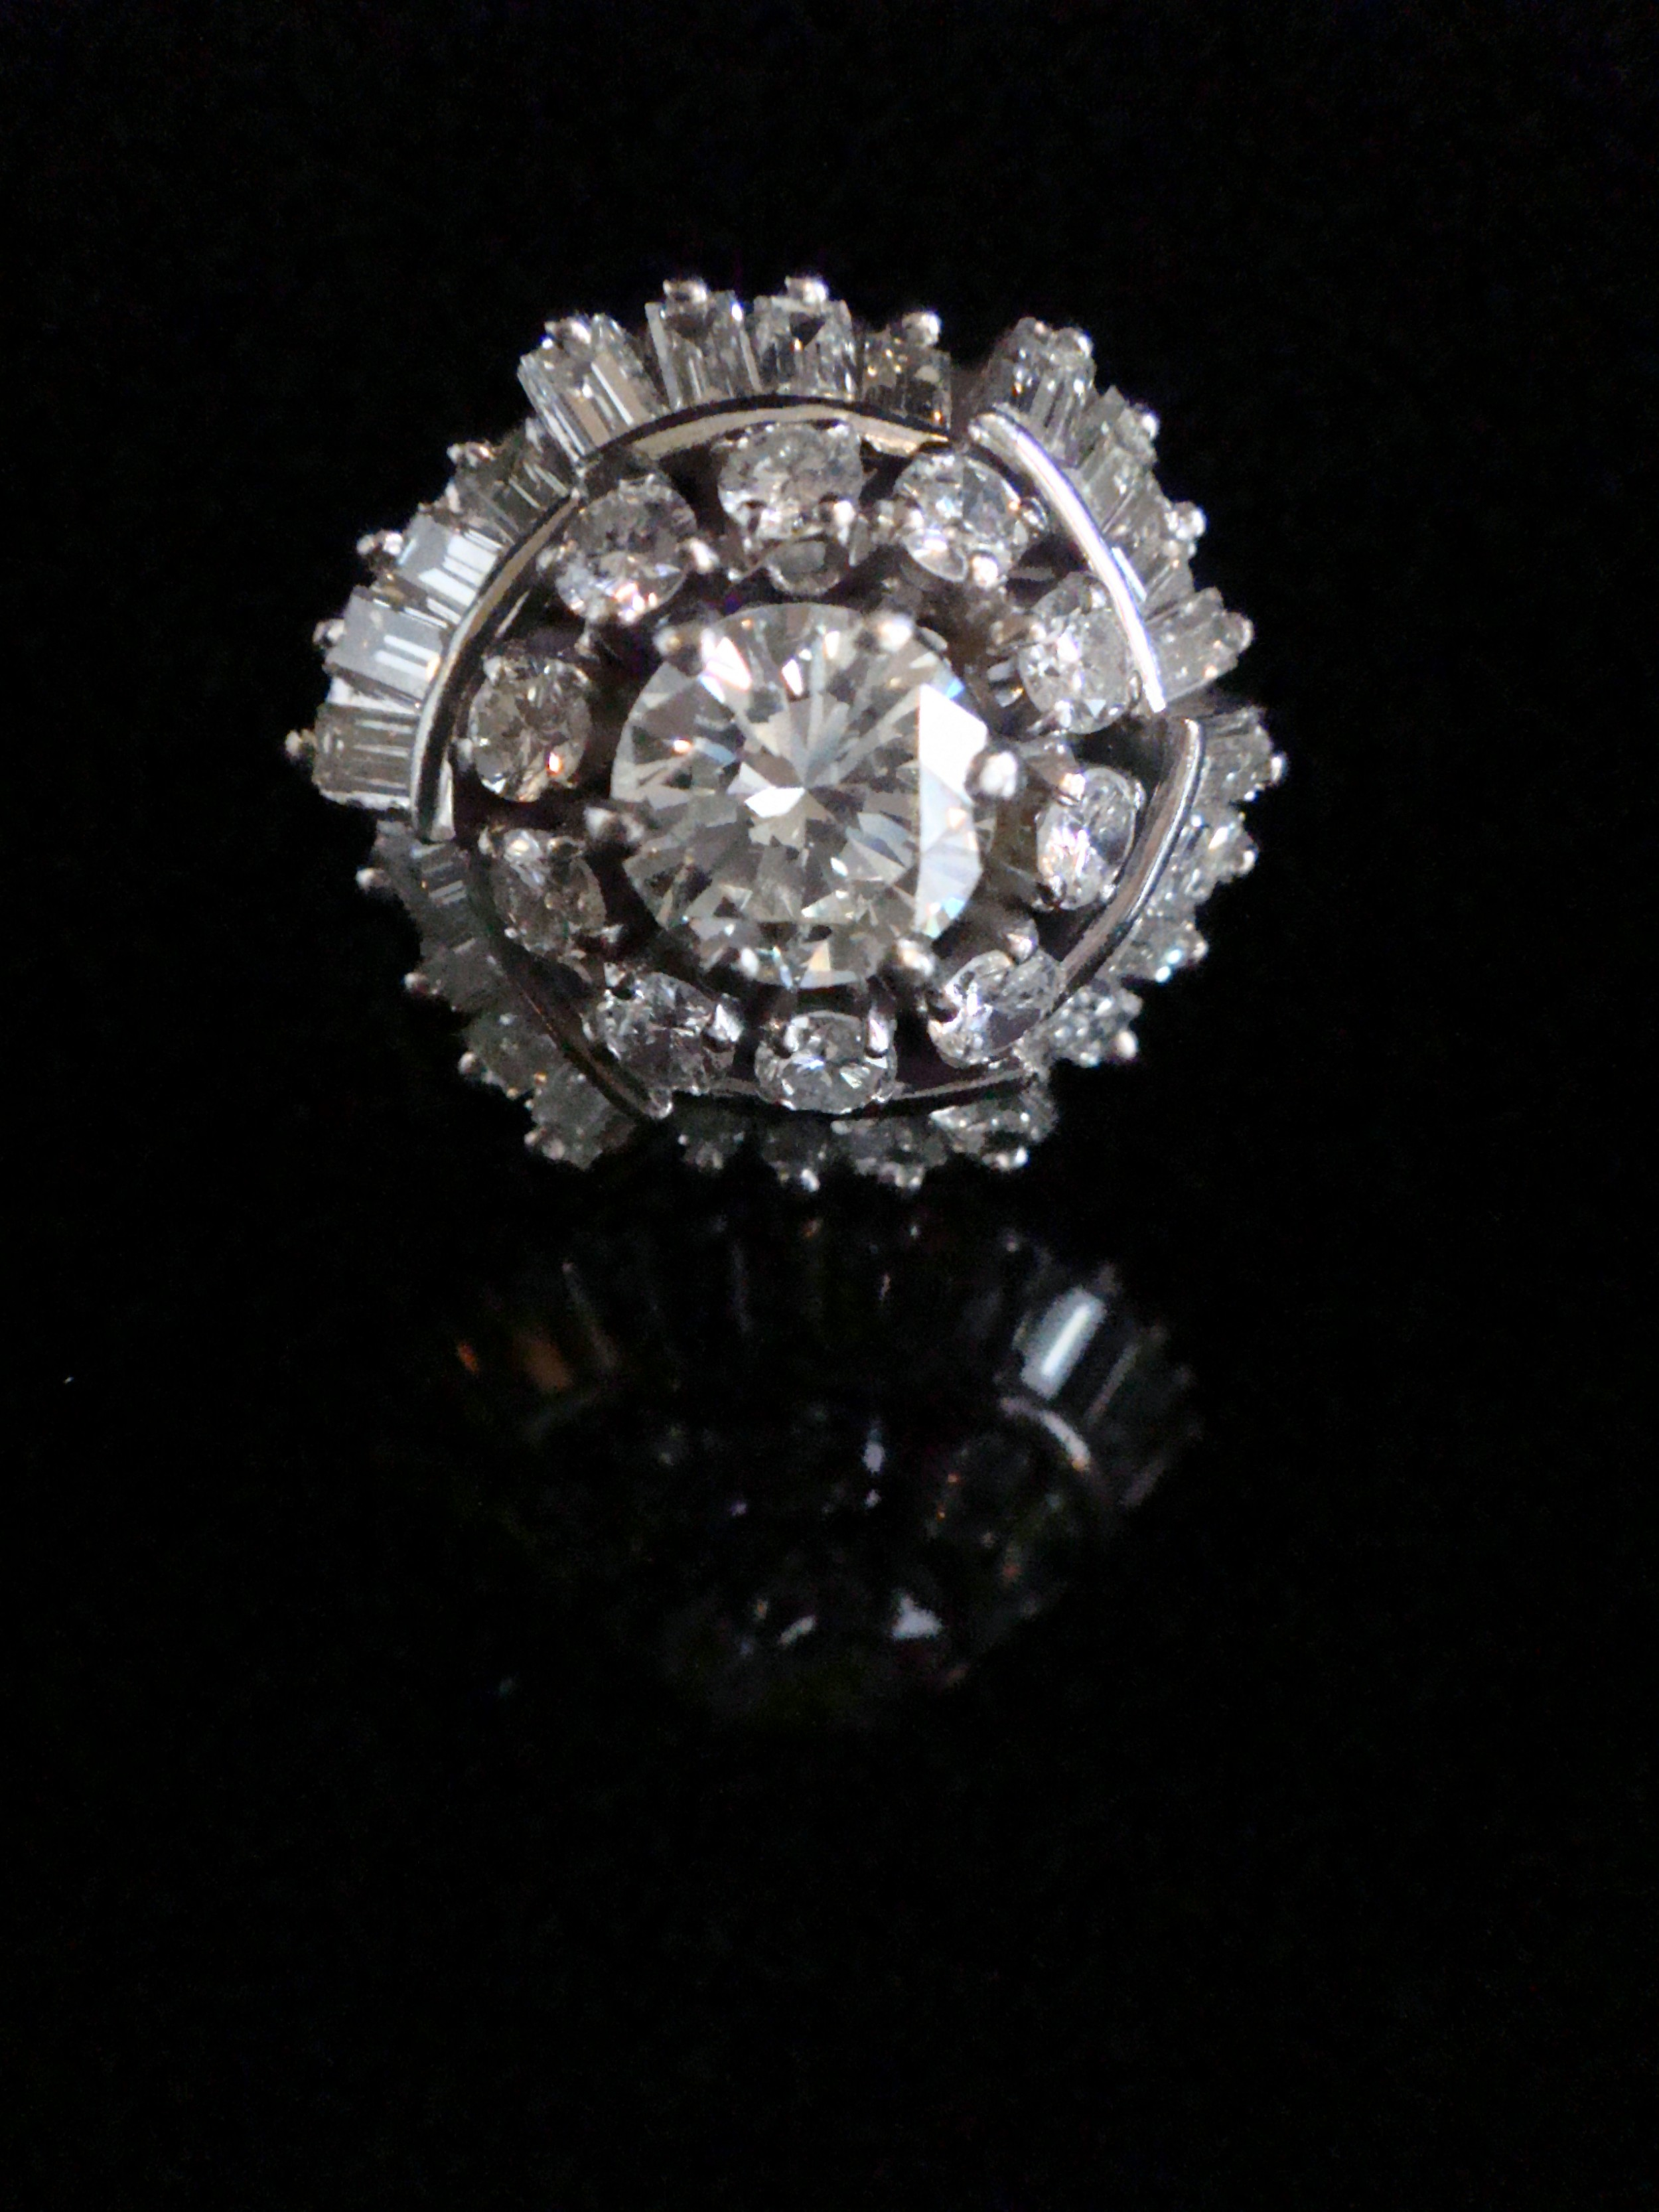 194050s 18ct 300ct diamond ballerina cluster cocktail ring with central 1ct diamond